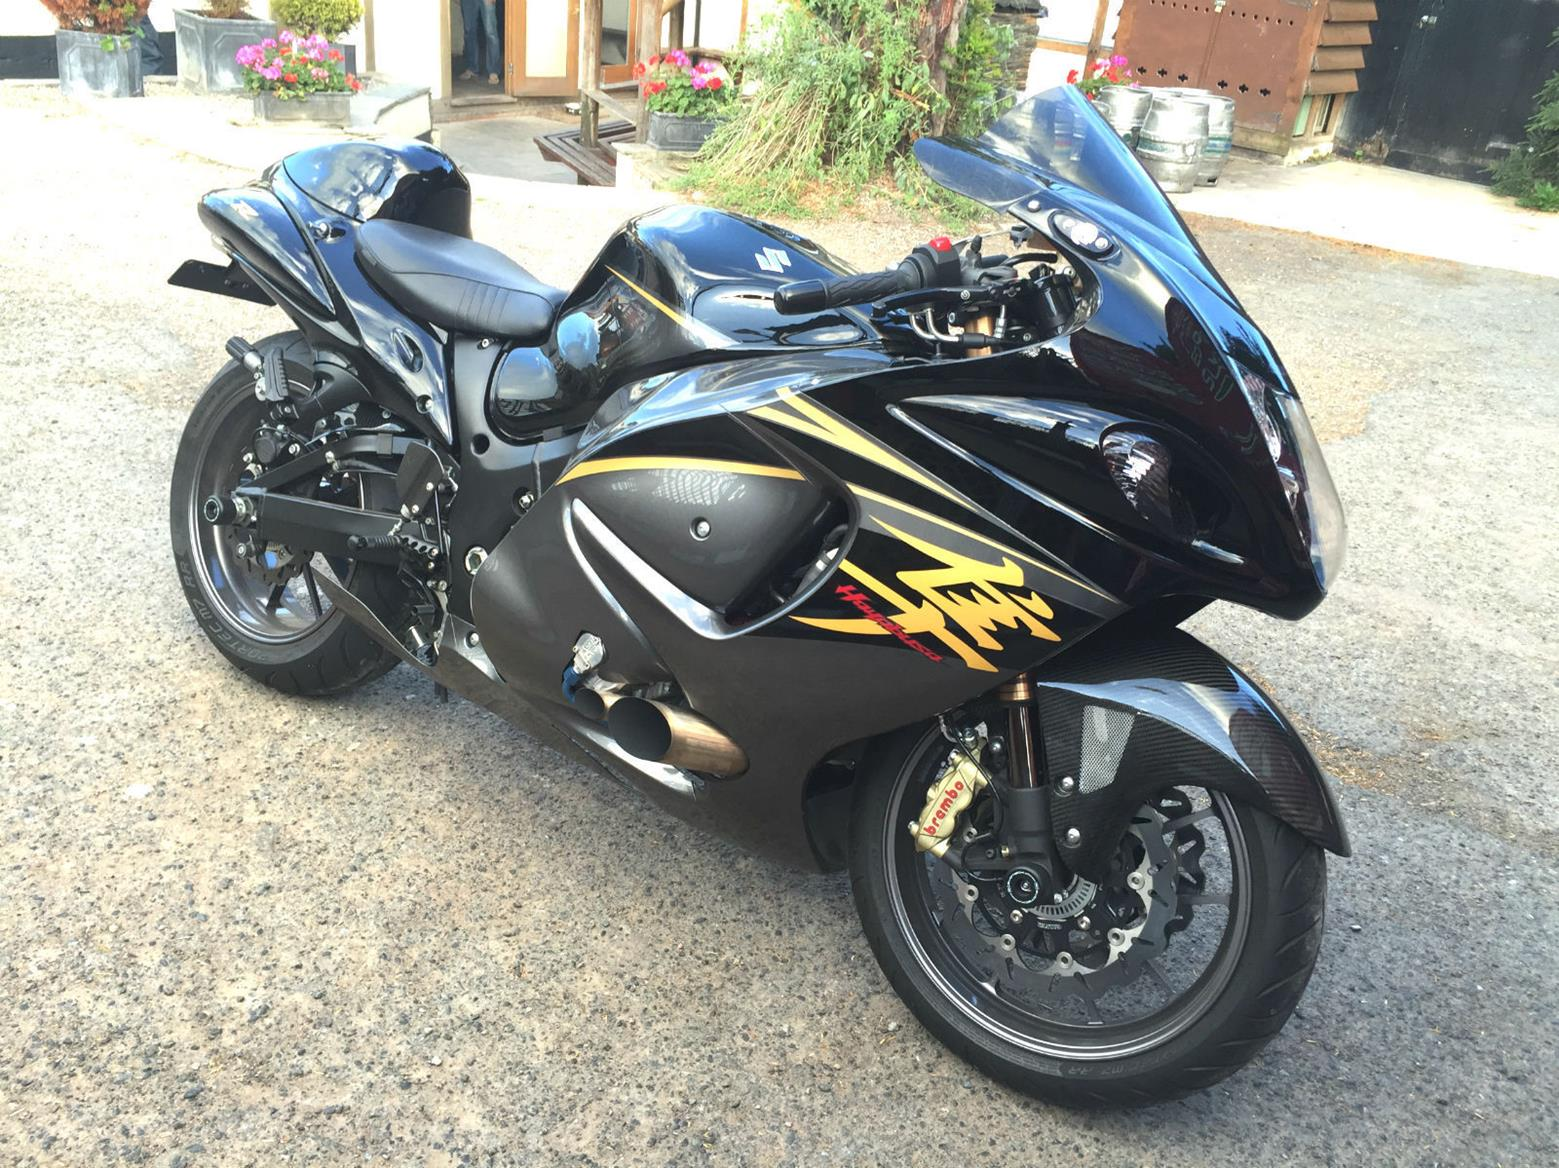 500bhp drag racing bike stolen | mcn